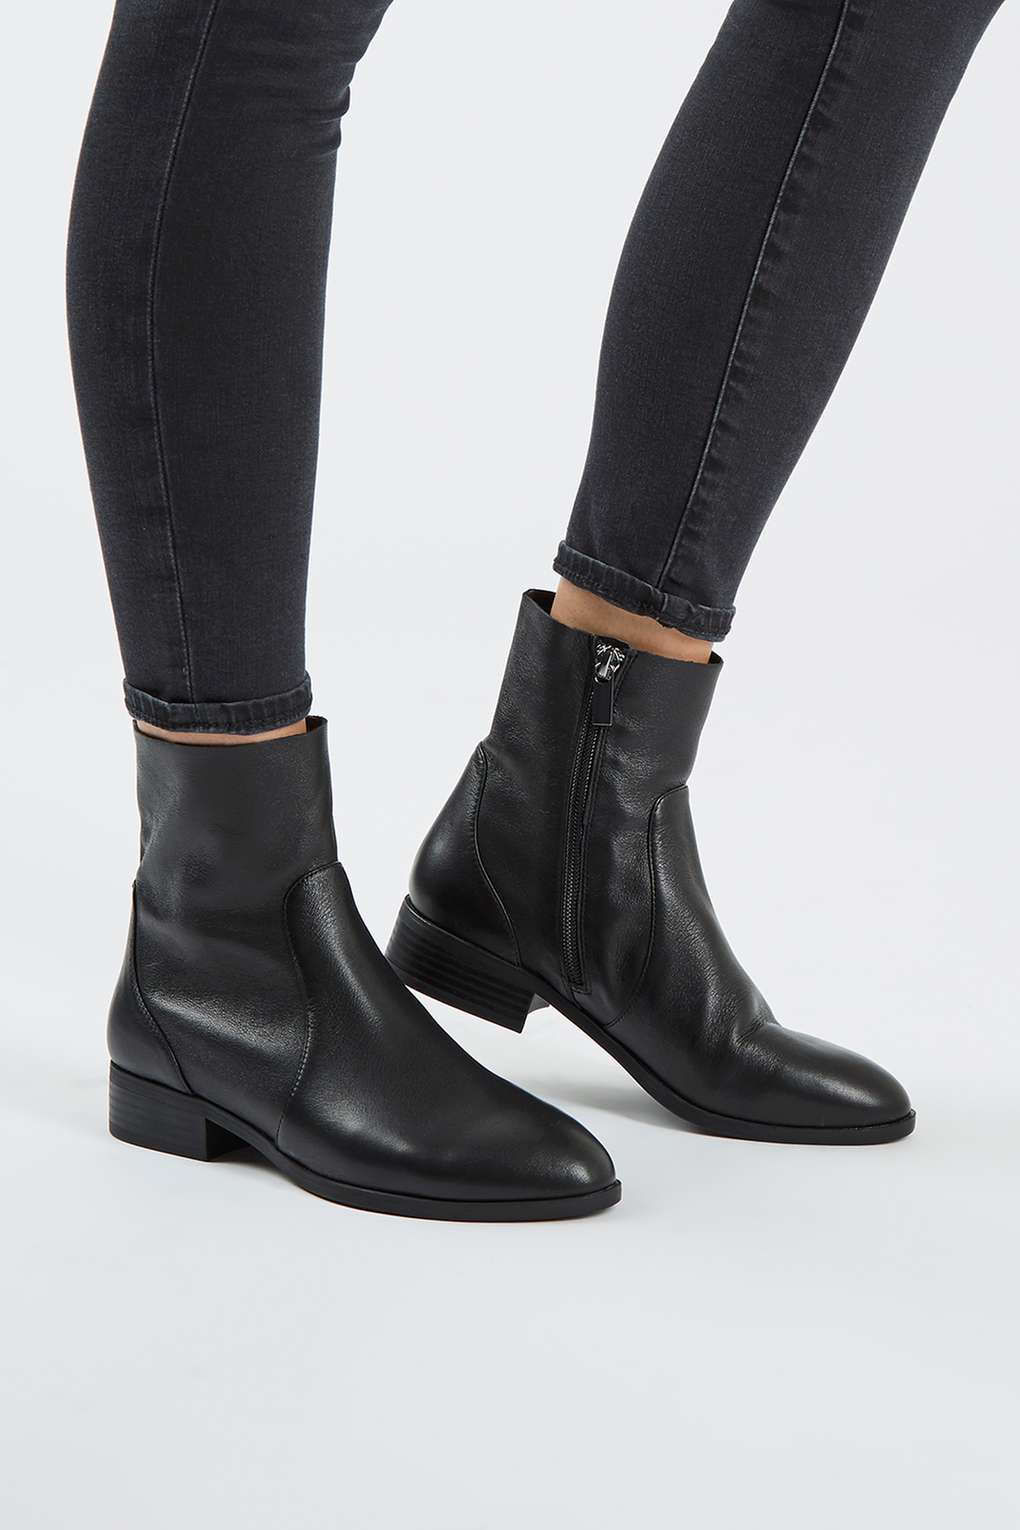 Lyst - Topshop Klash Boot in Black